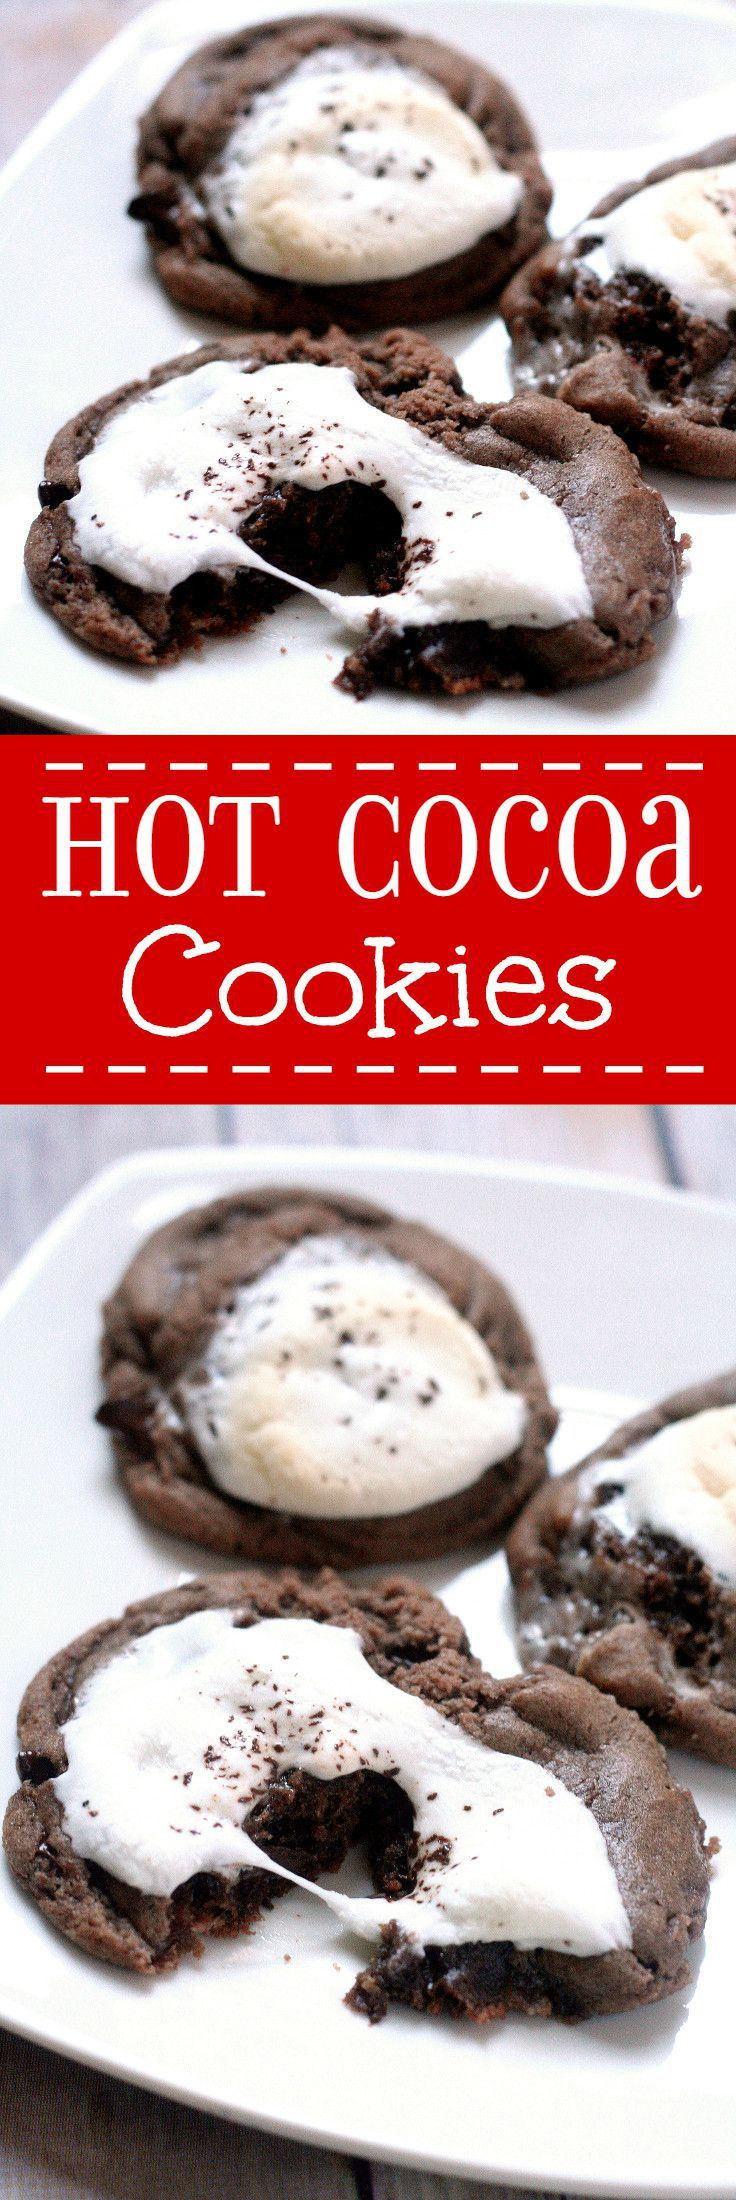 Hot Cocoa Cookies replicate the delightful feeling of a warm cup of cocoa on a cold day, with warm and gooey chocolate cookies topped with a toasted marshmallow.